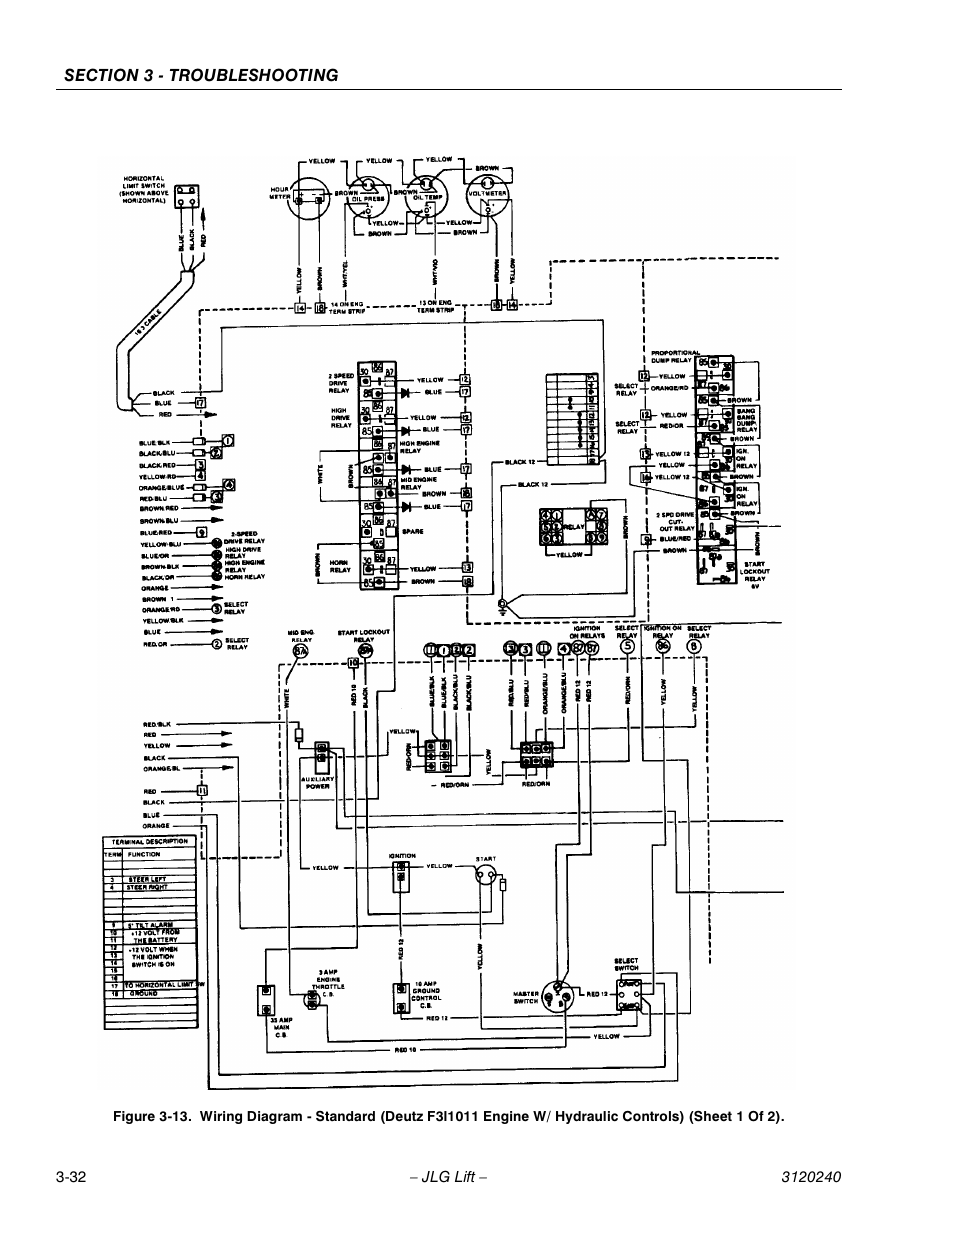 jlg 20am wiring diagram